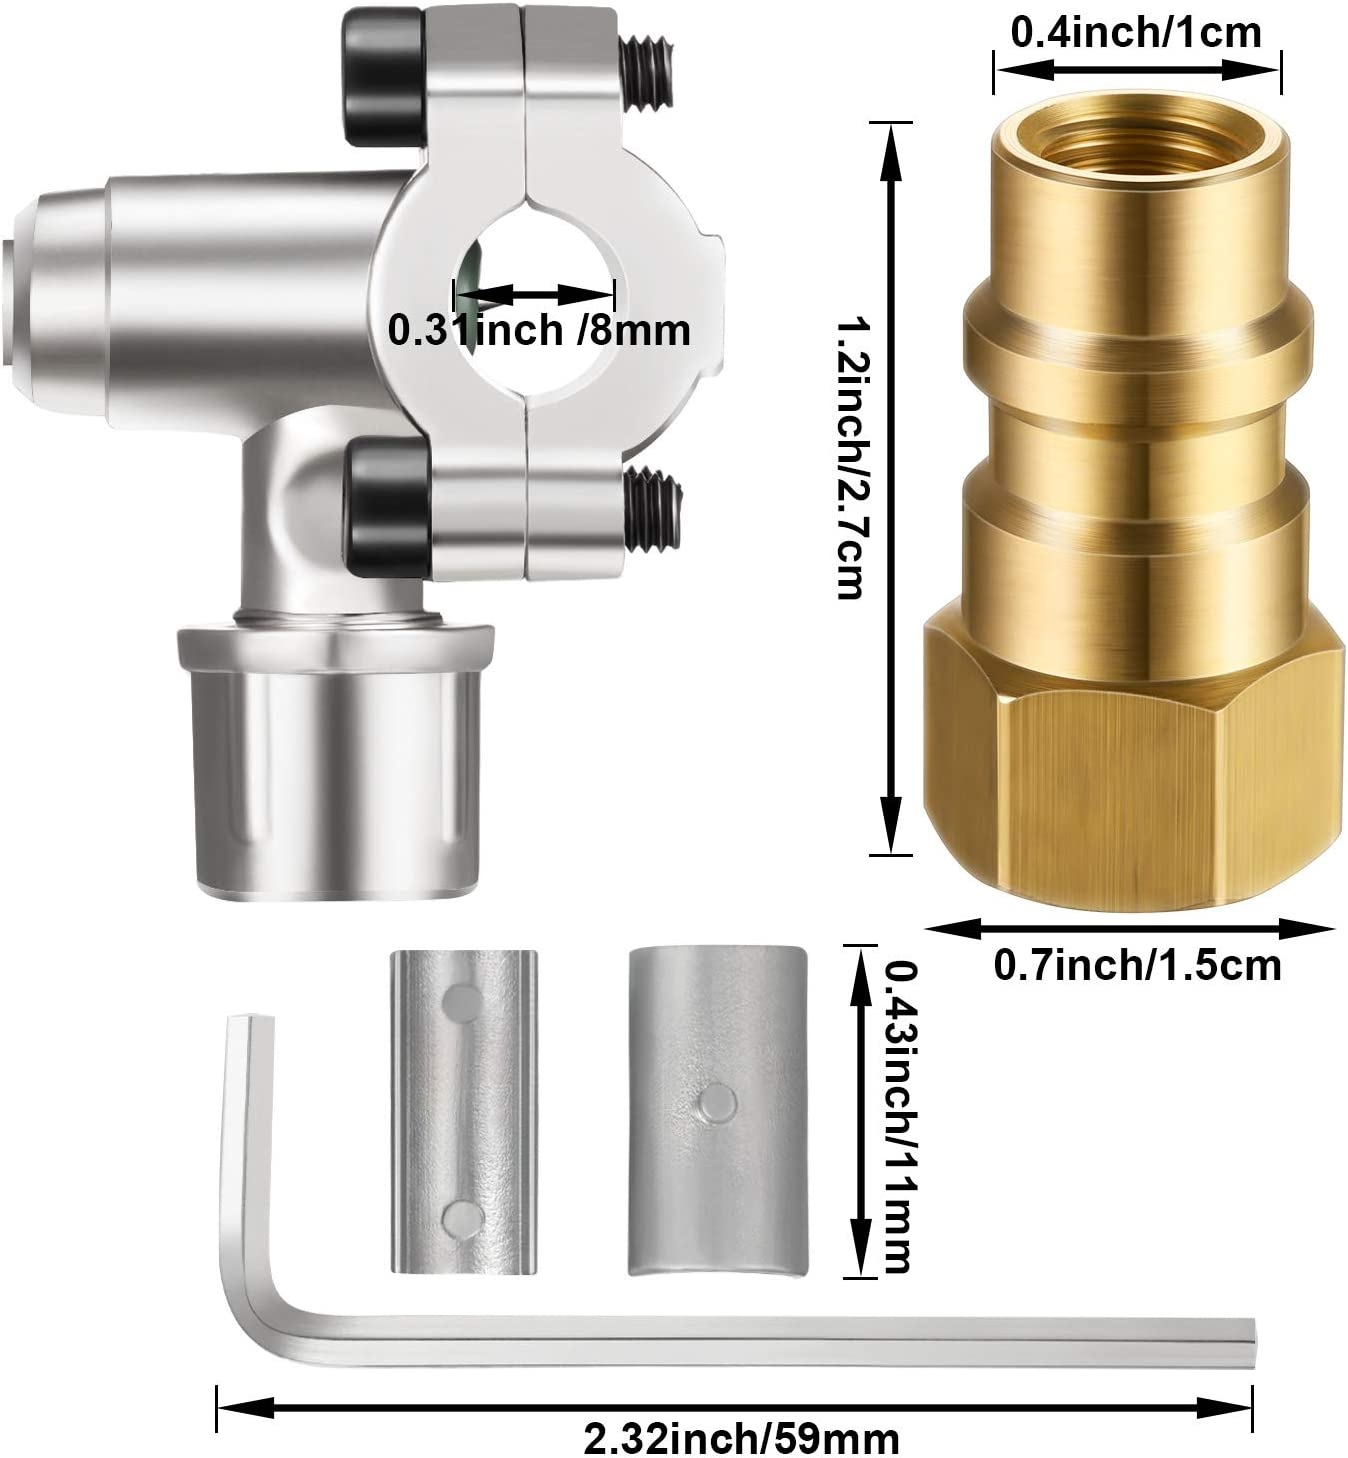 5 Pieces BPV31 Bullet Piercing Tap Valve Kits U-Charging Hose Refrigerant Can Tap with Gauge R134a Can Connect to R12// R22 Port AC 1//2 and Universal Retrofit Valve with Dust Cap